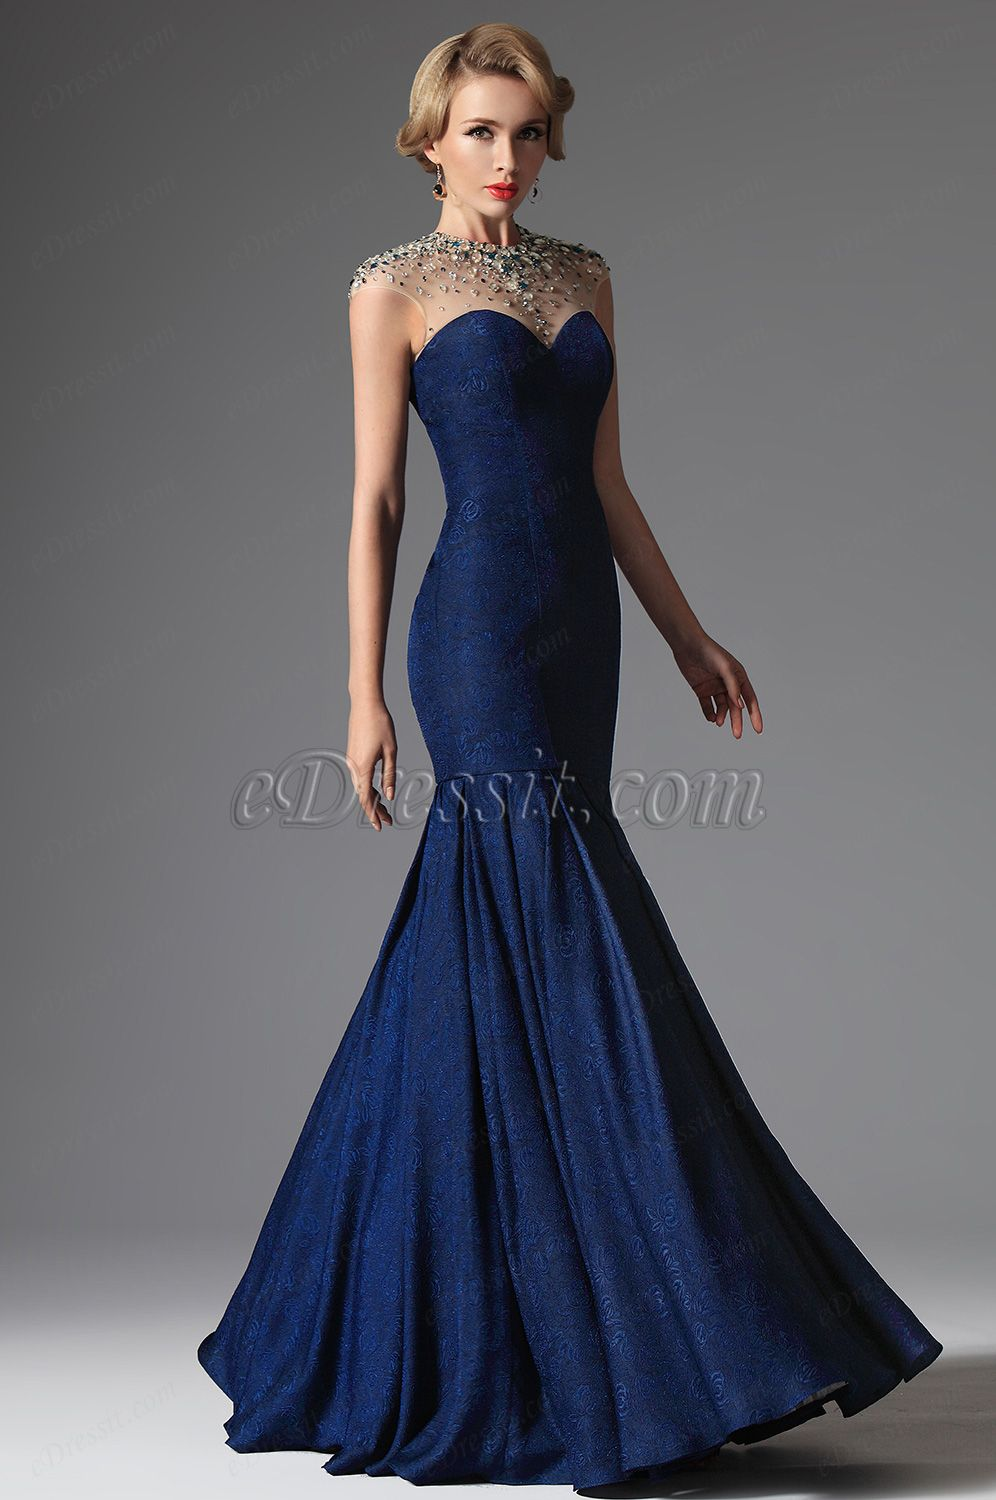 eDressit 2014 New Blue Sexy Crystal Beaded Evening Dress Formal Gown ...